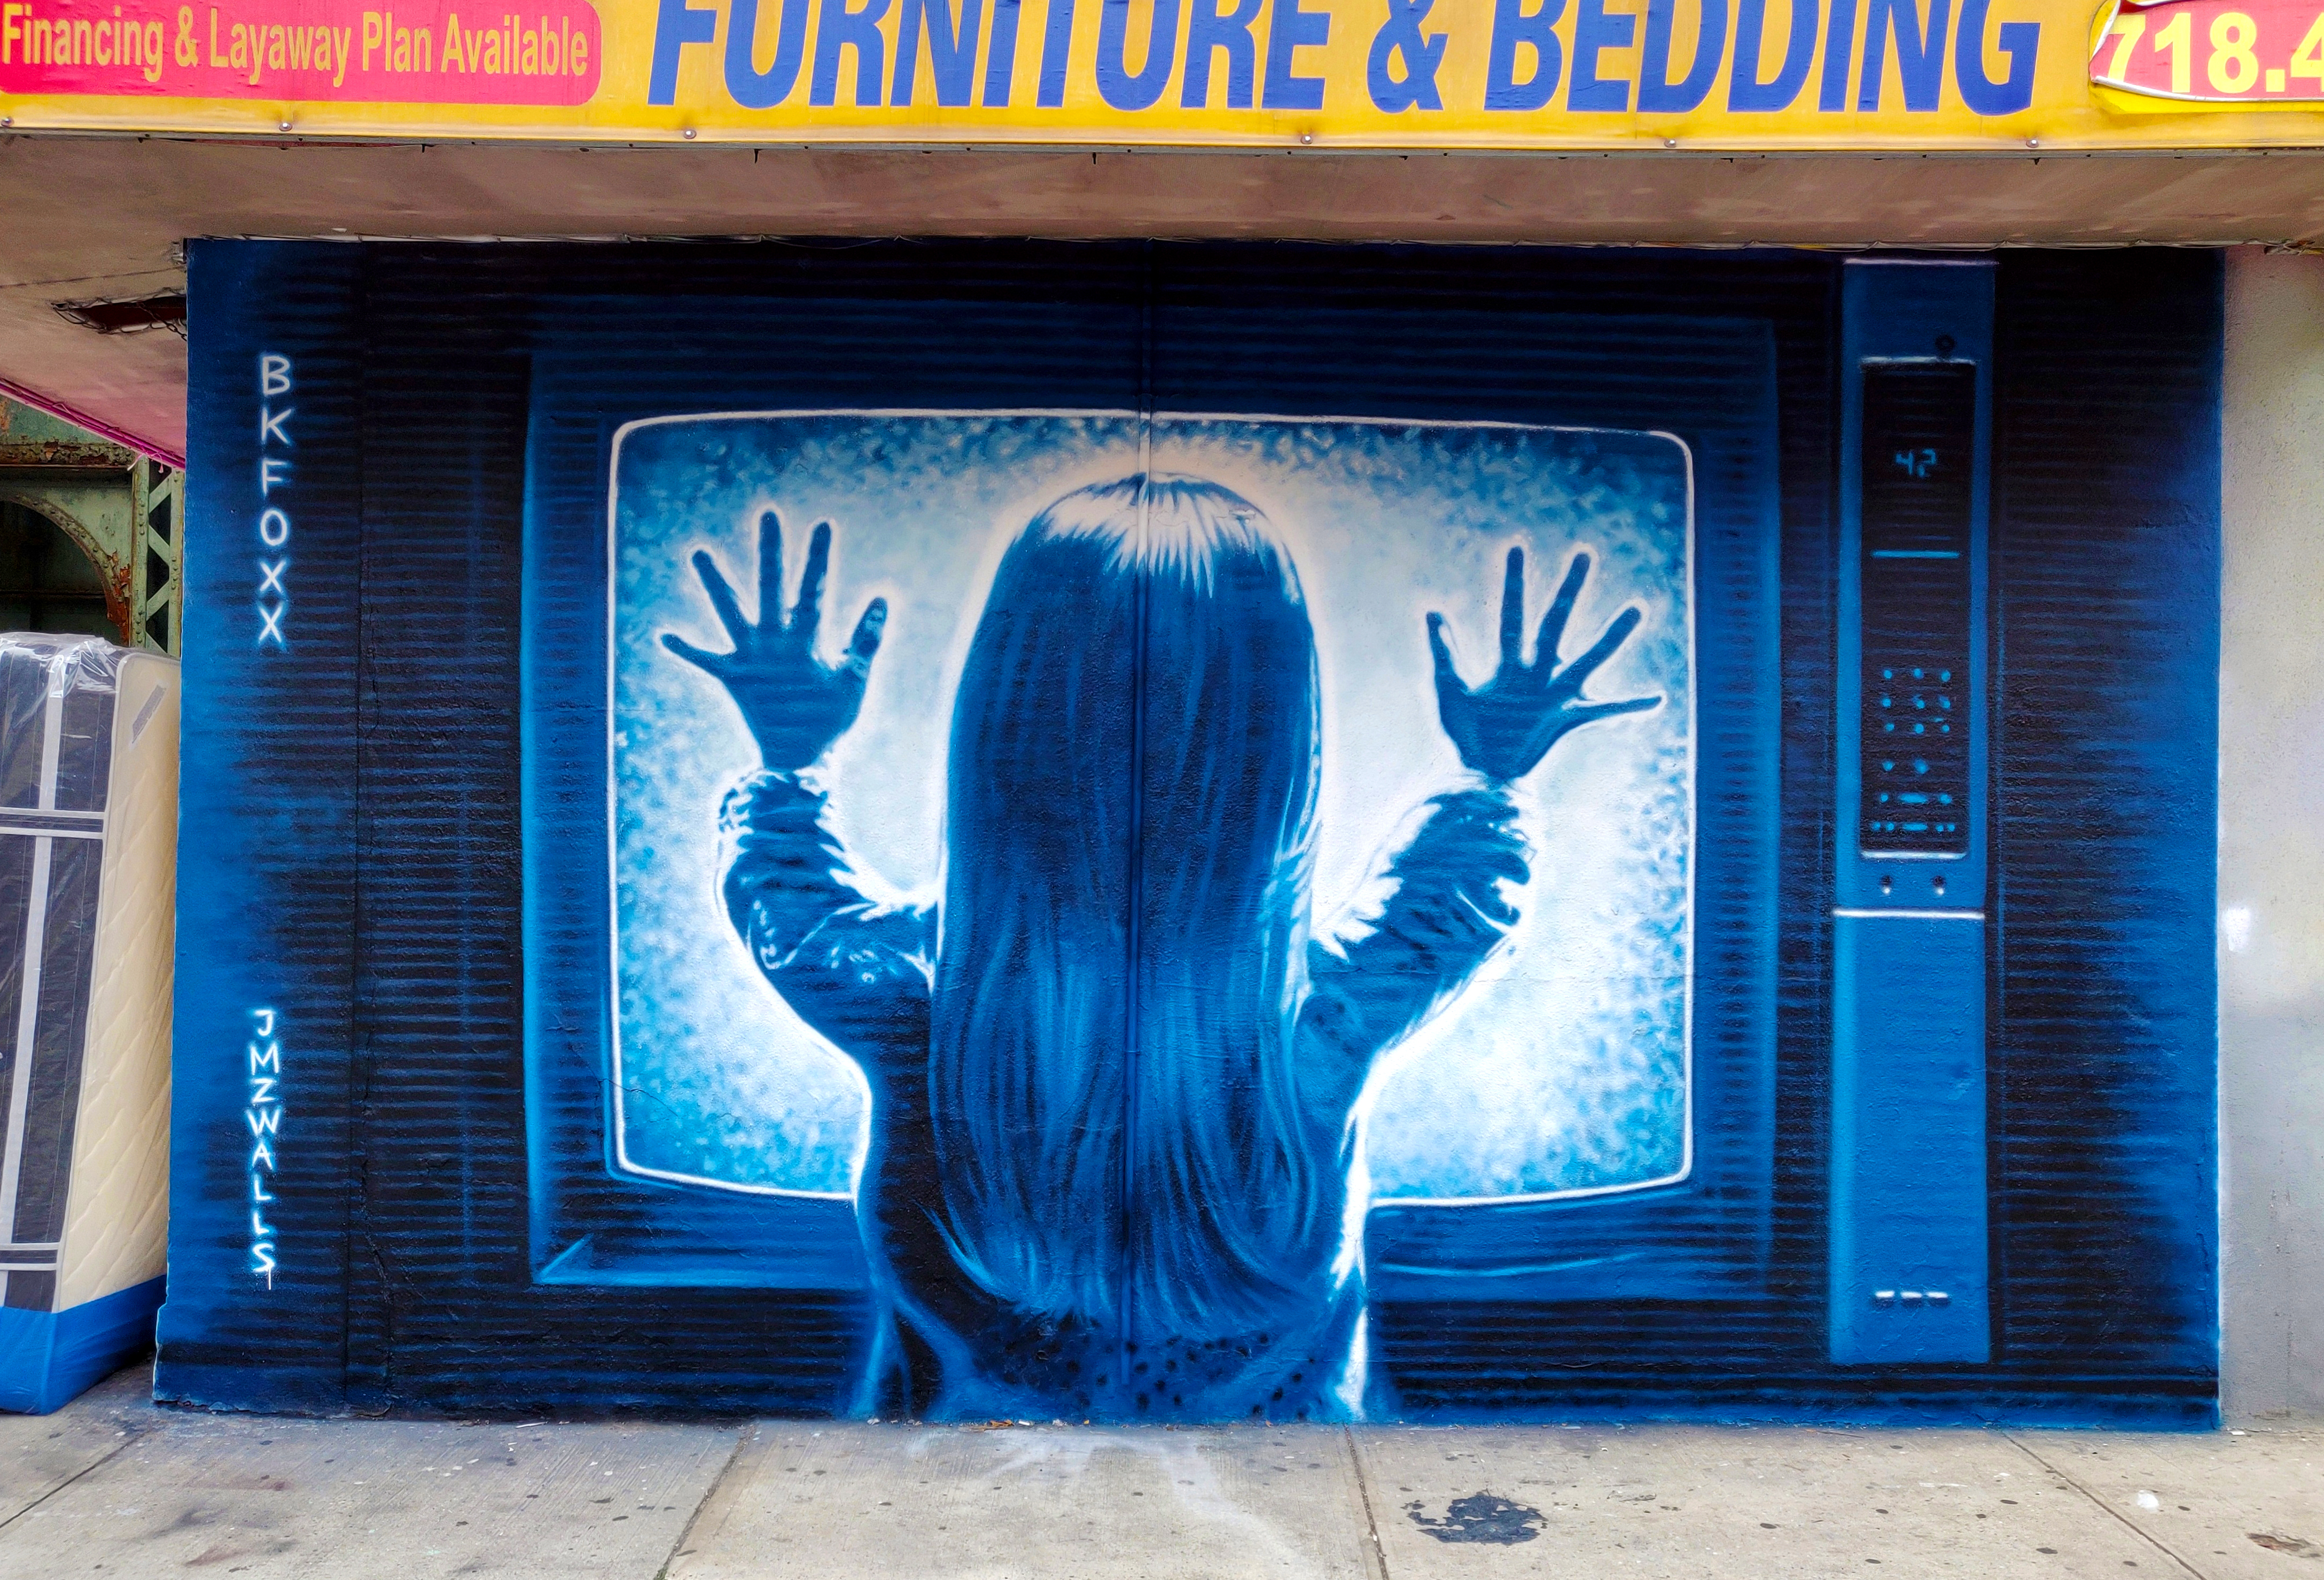 <b>21st Century</b><br>Scene from Poltergeist<br>Brooklyn, NY<br>with JMZ Walls, Oct 2018<br>photo by just_a_spectator